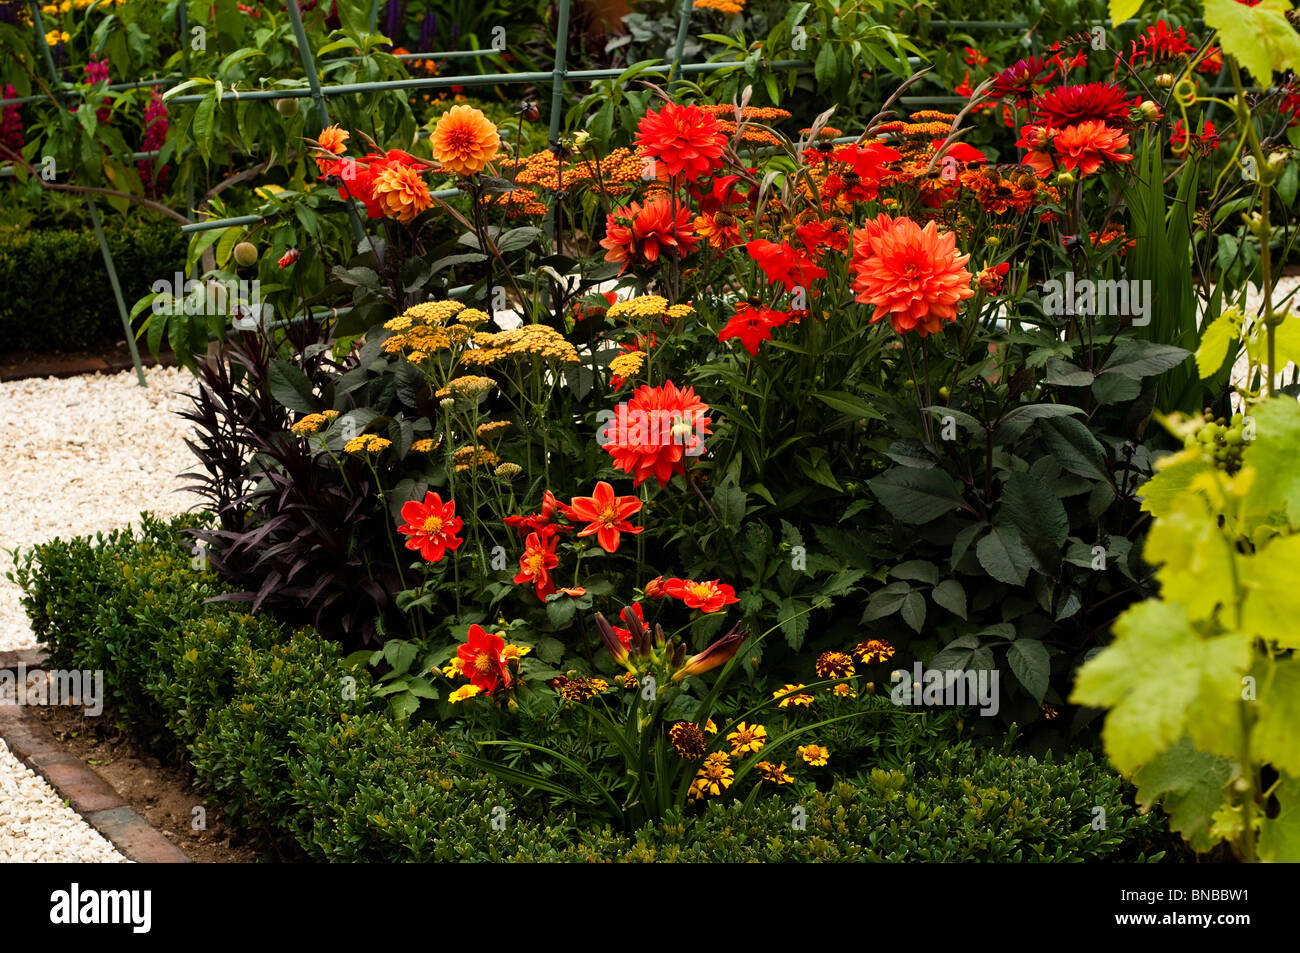 'Much Ado About Nothing' show garden at Hampton Court Flower Show 2010, London, United Kingdom Stock Photo